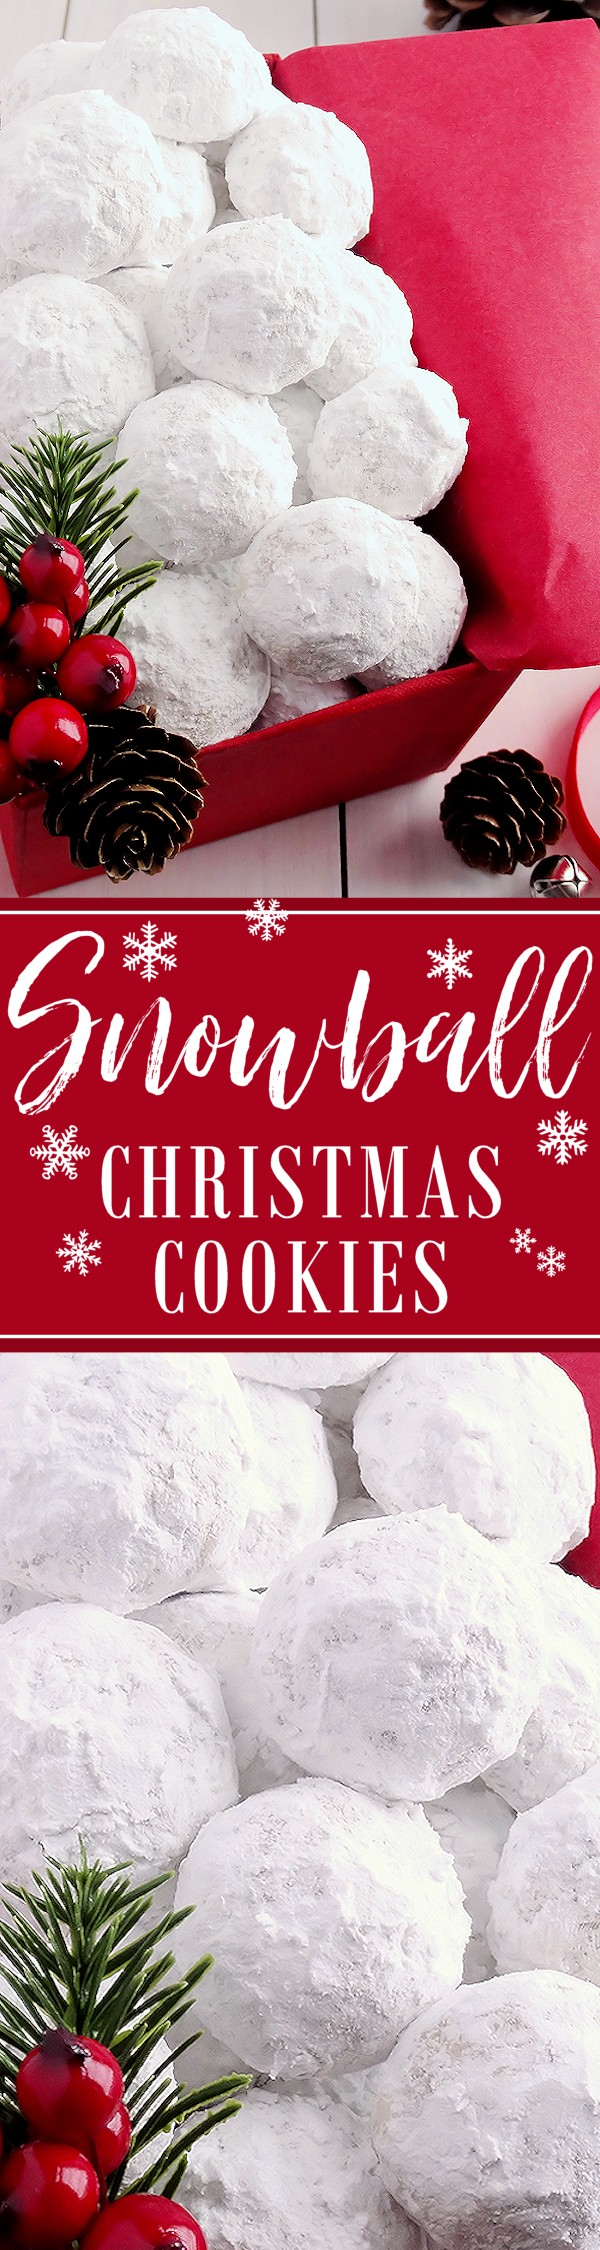 Get the recipe Snowball Christmas Cookies @recipes_to_go